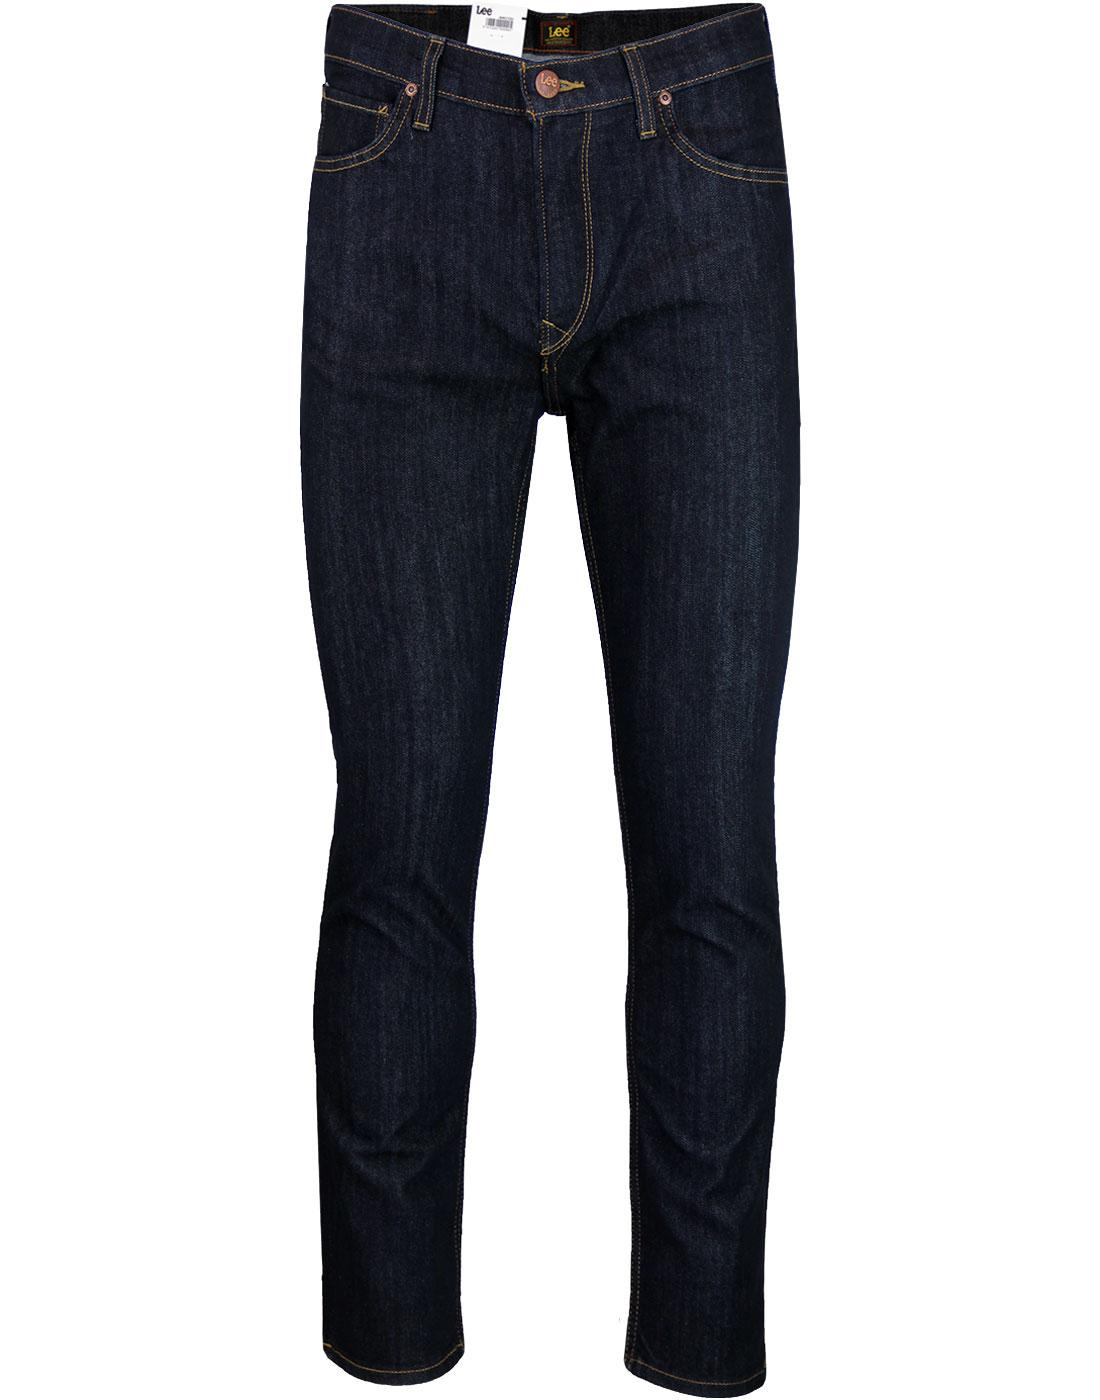 Rider LEE Slim Leg Retro Denim Jeans ONE WASH